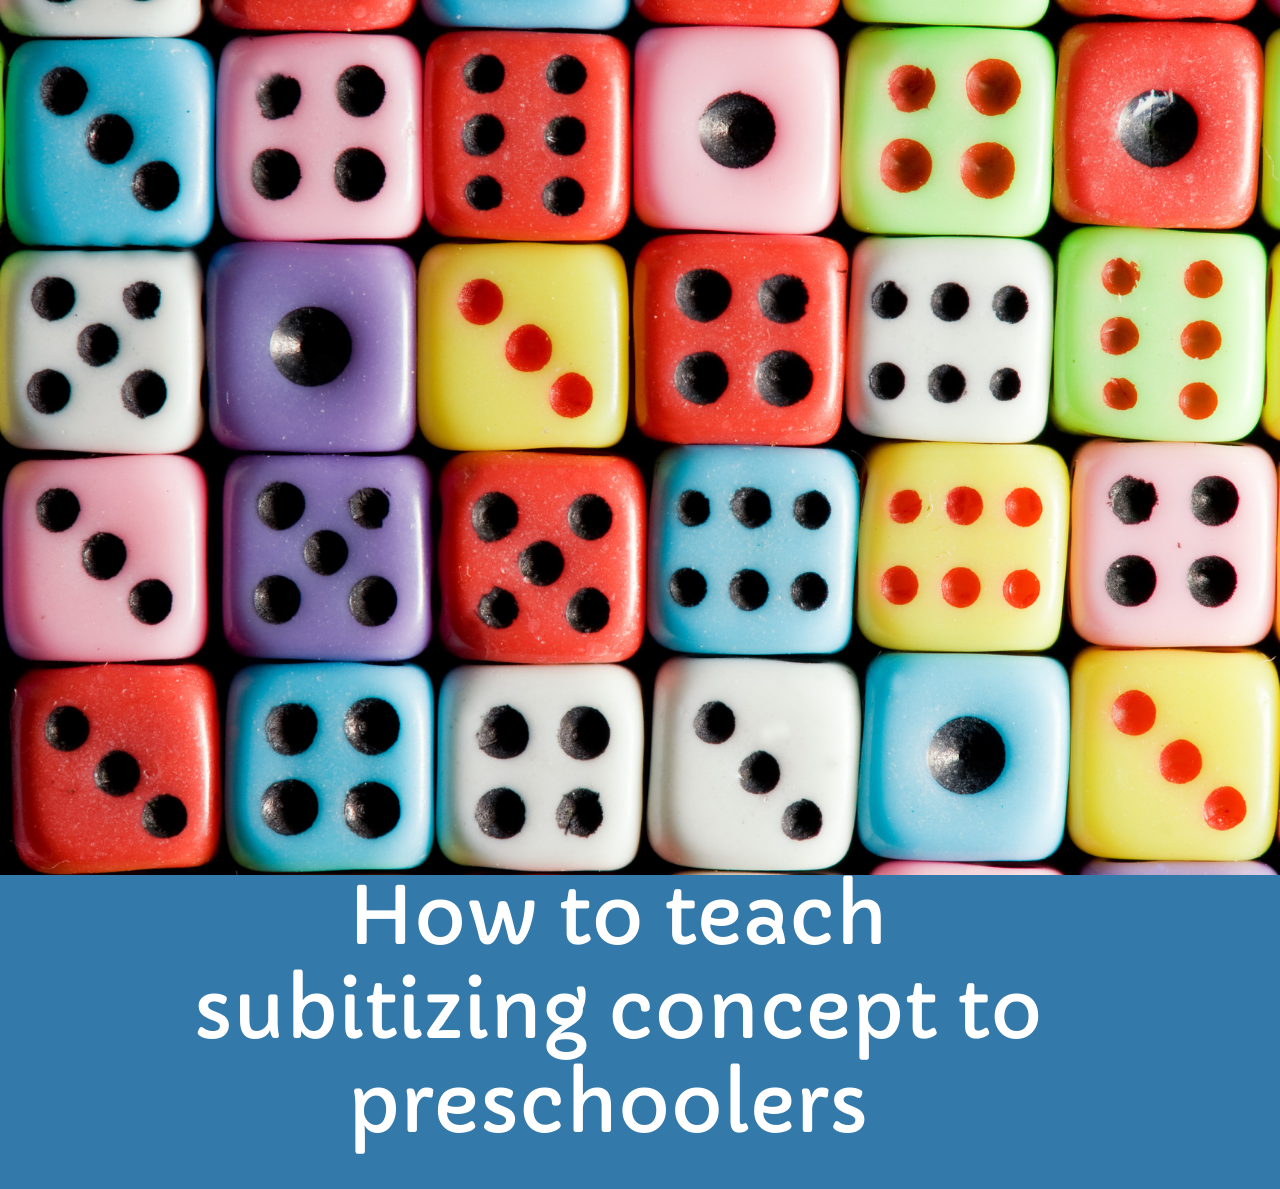 How to teach subitizing concept to preschoolers